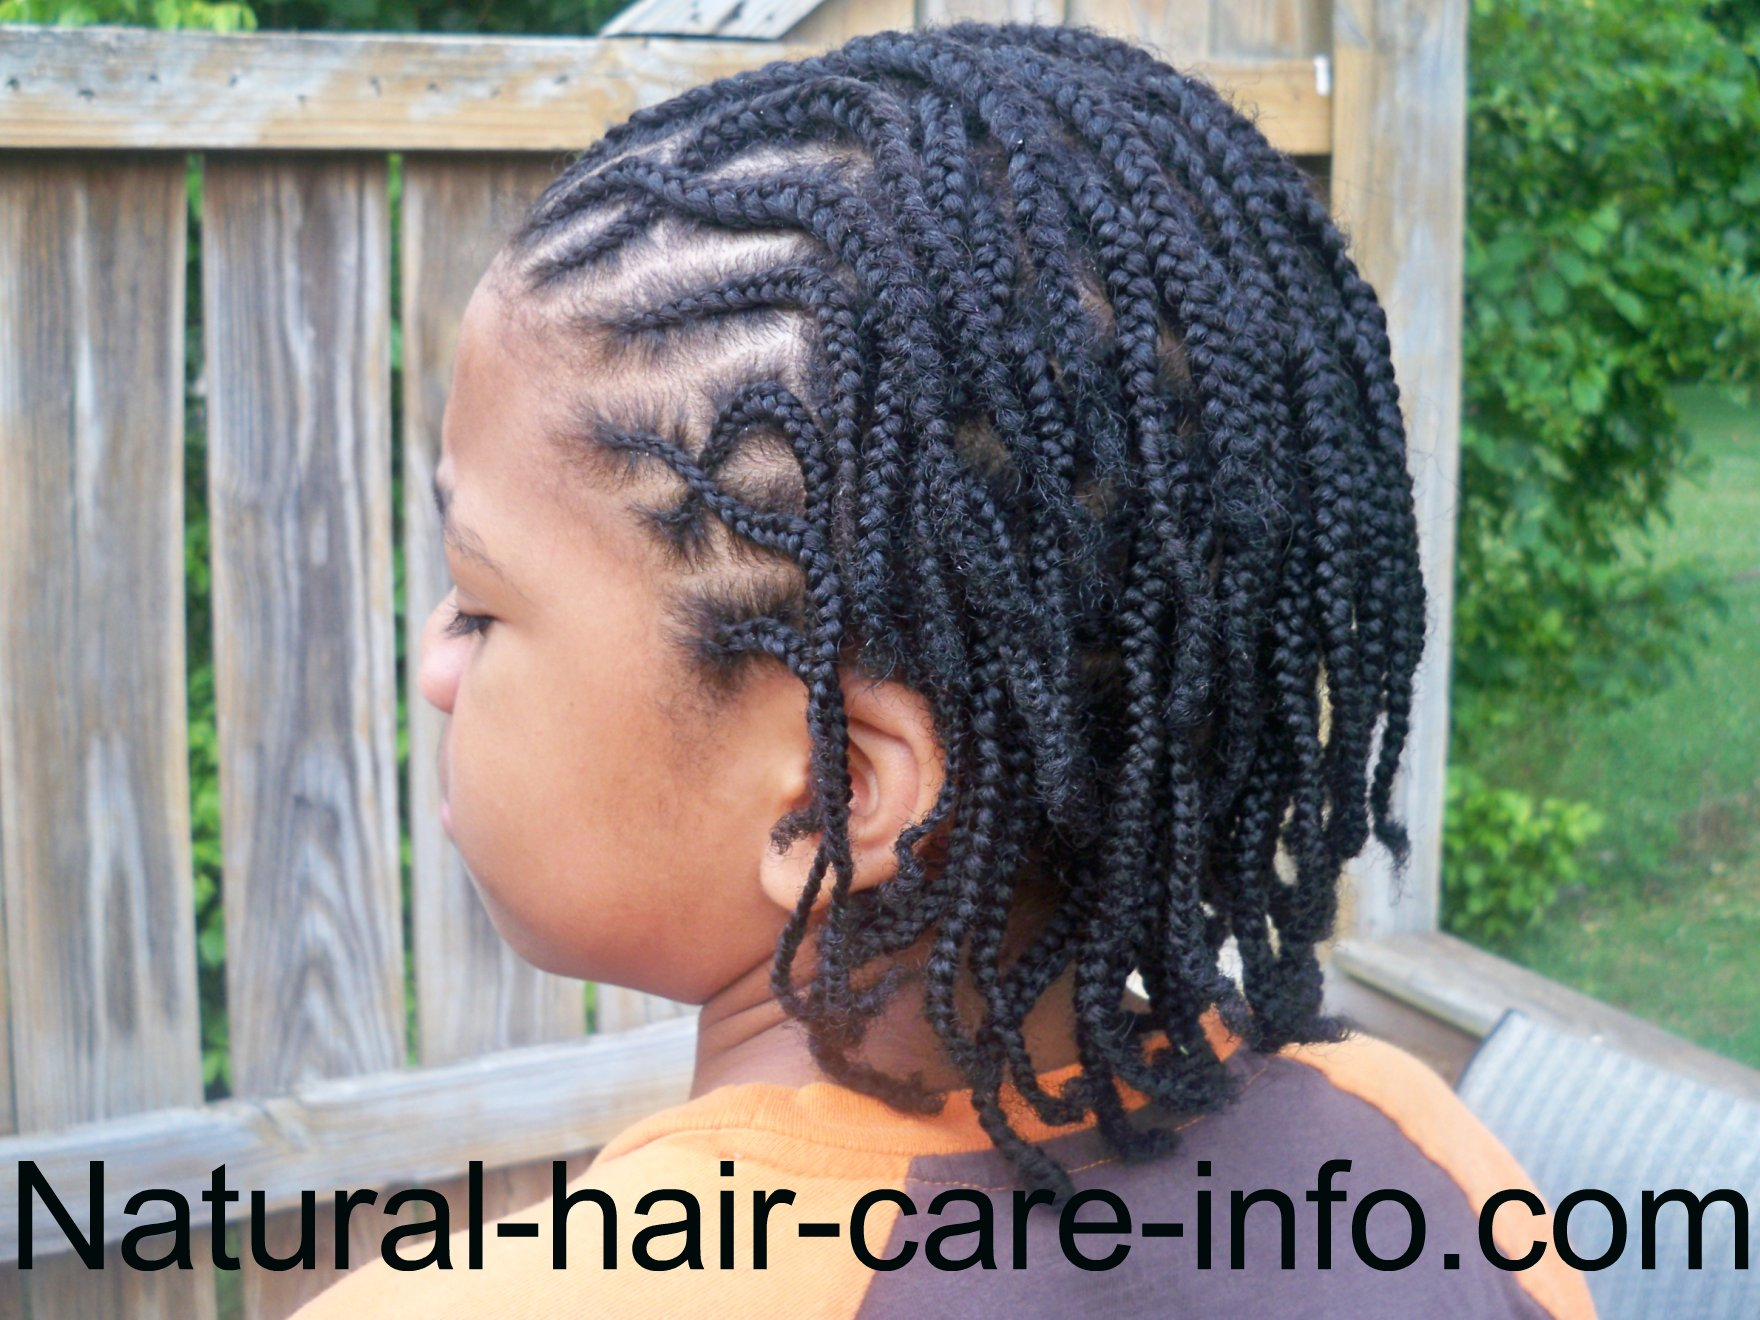 Incredible Braid Hairstyles For Men Complete List And Tutorials Hairstyles For Women Draintrainus